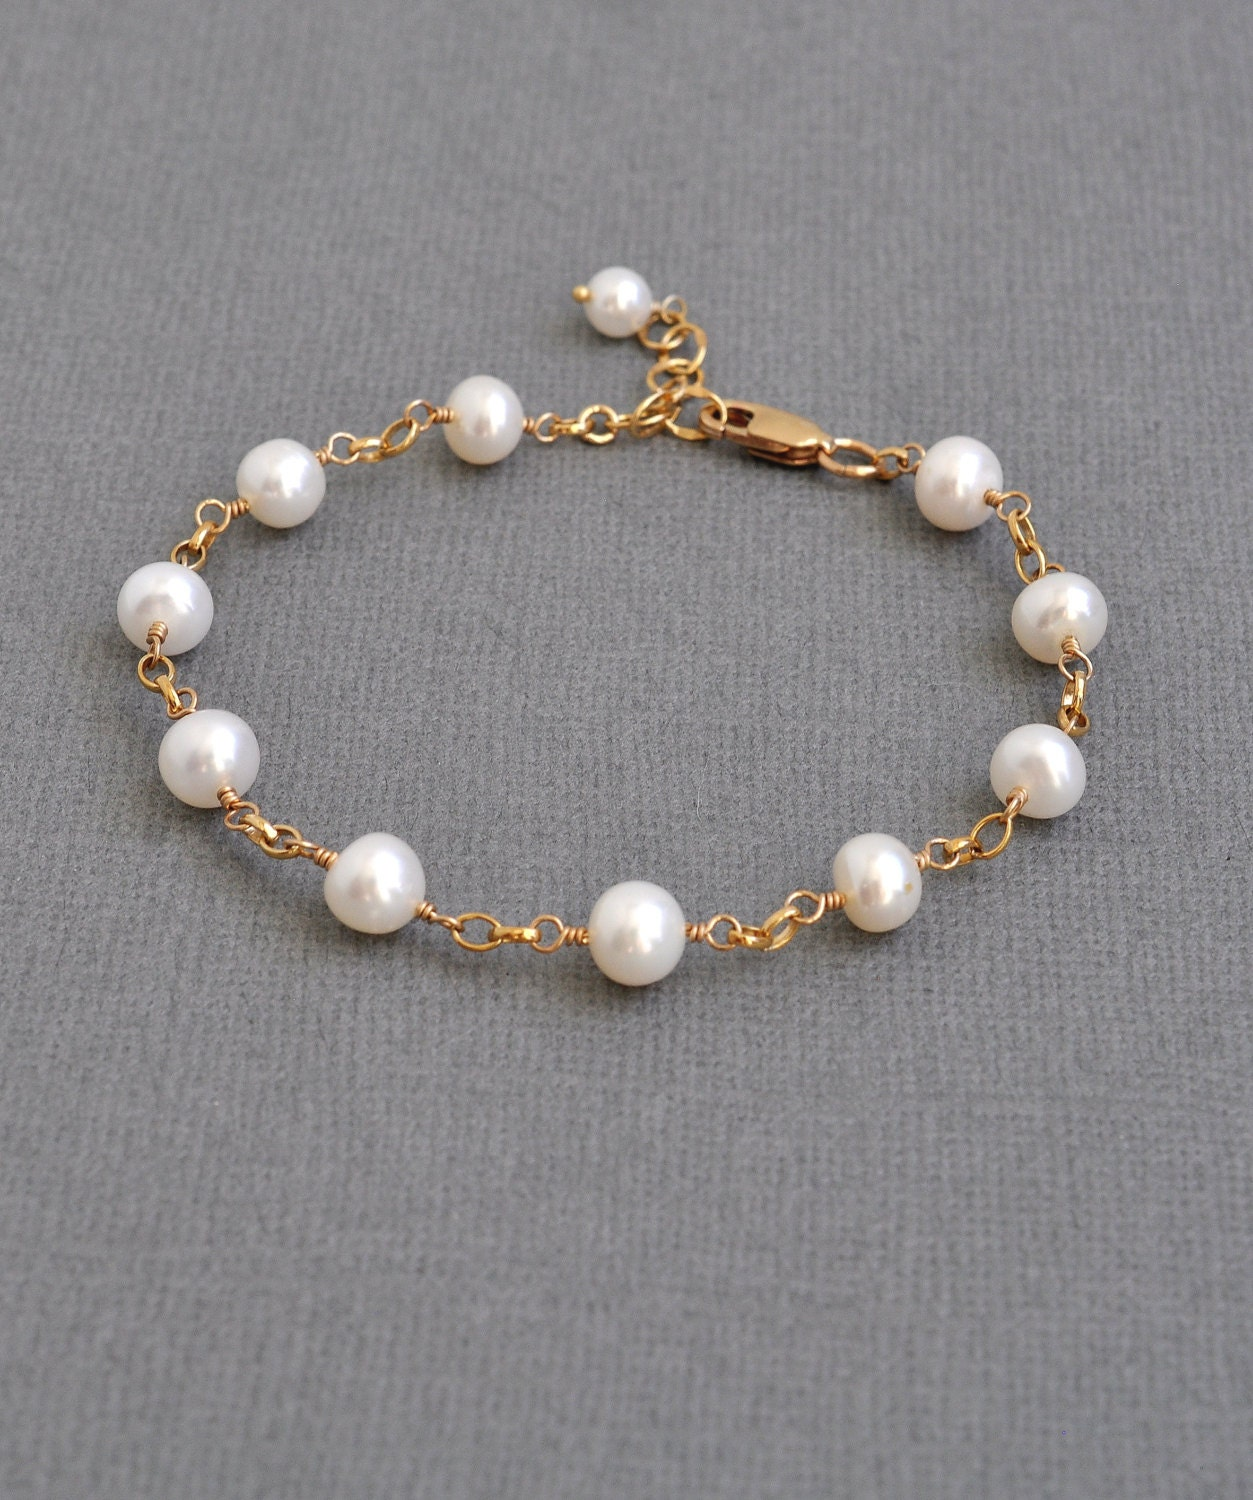 pearl lrg white cultured gold phab in freshwater main bracelet detailmain